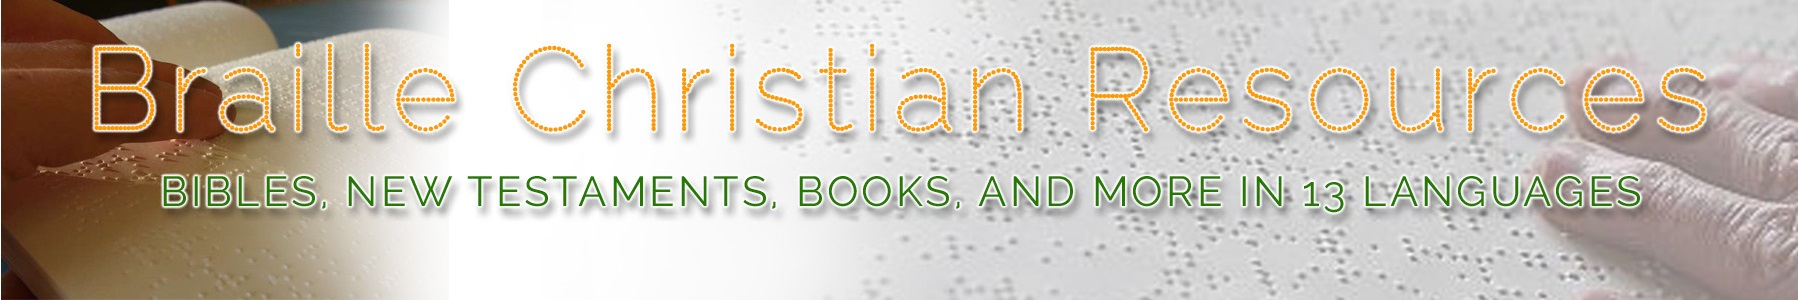 Blind and Braille Ministries and Resources